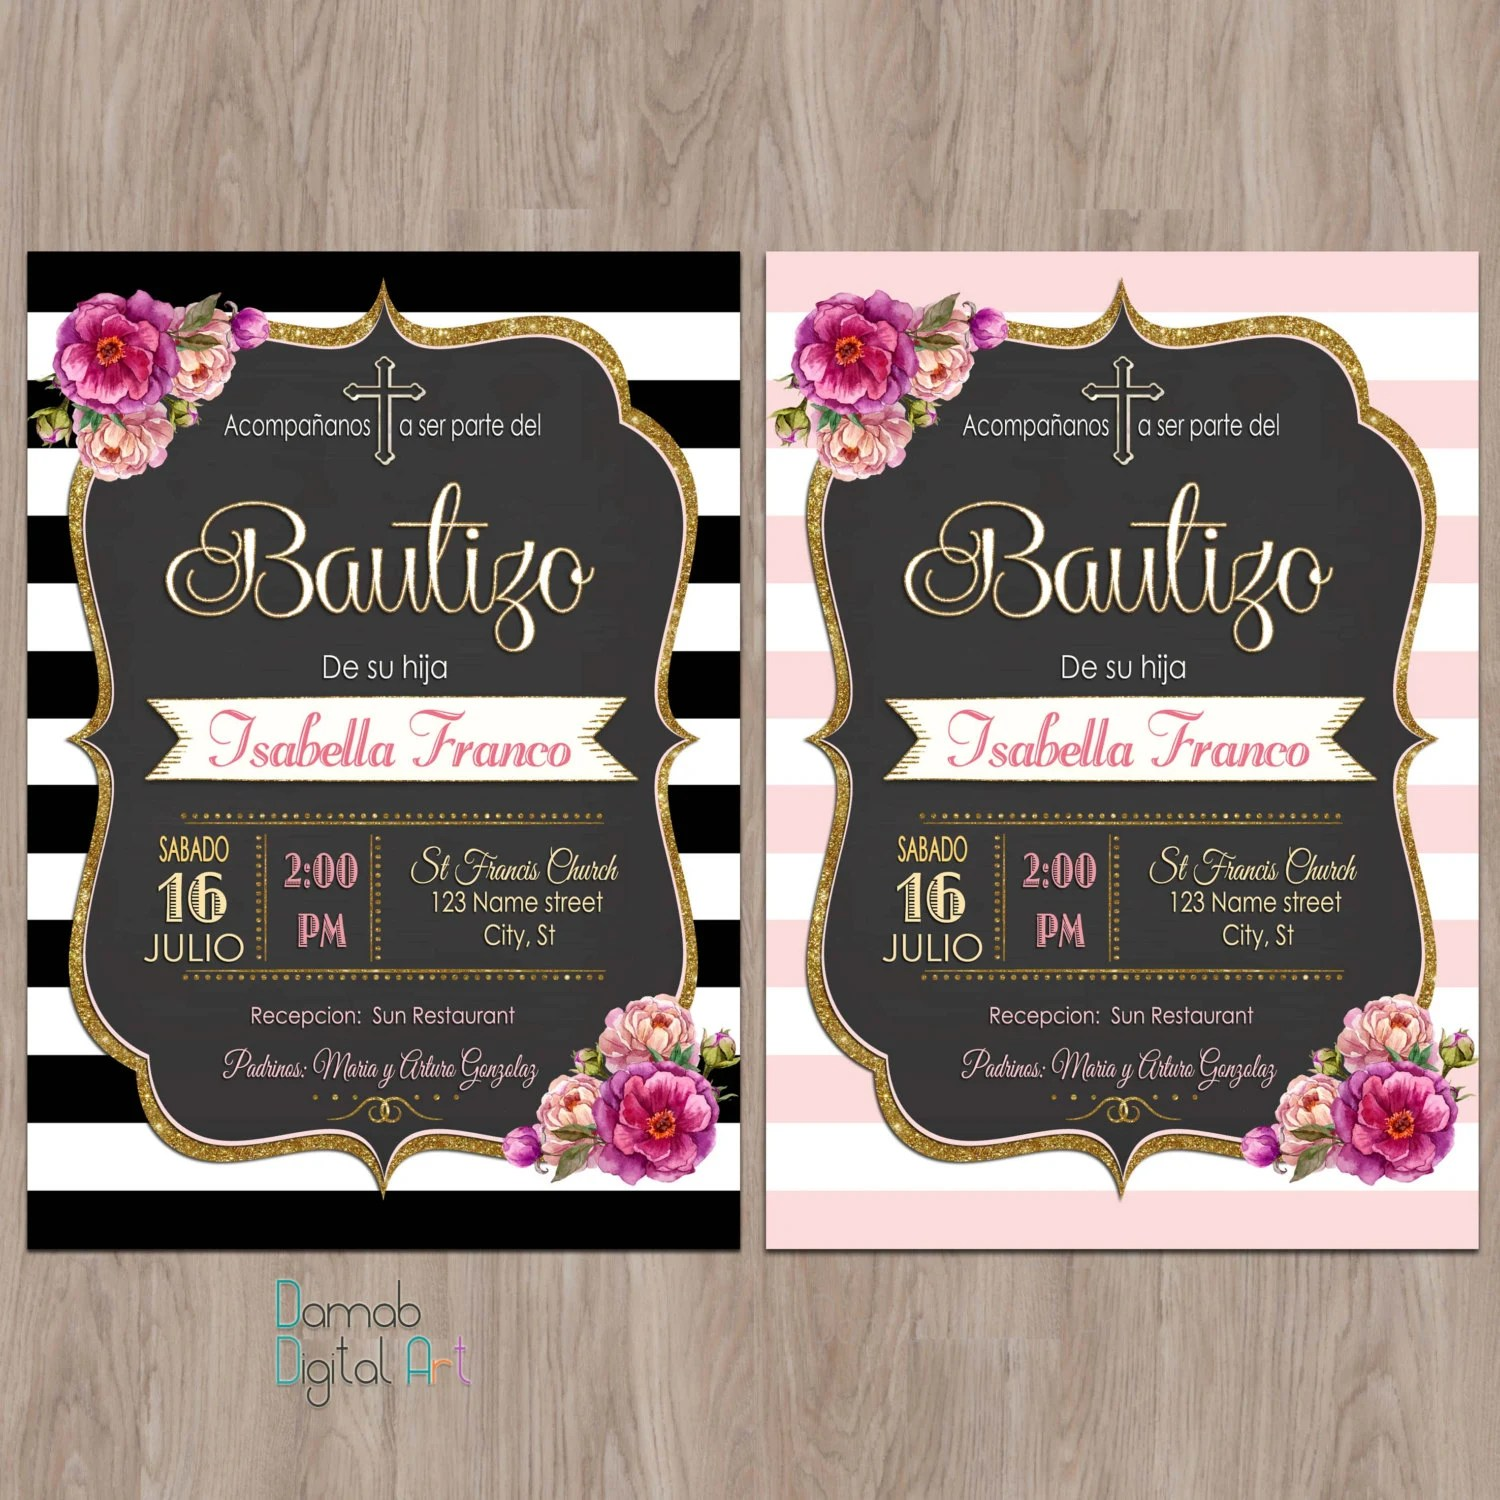 spanish invitation wedding invitations in spanish Bautizo invitations invitaciones de bautizo invitations de bautizo spanish baptism invitation Baptism Invitation girl invitacion